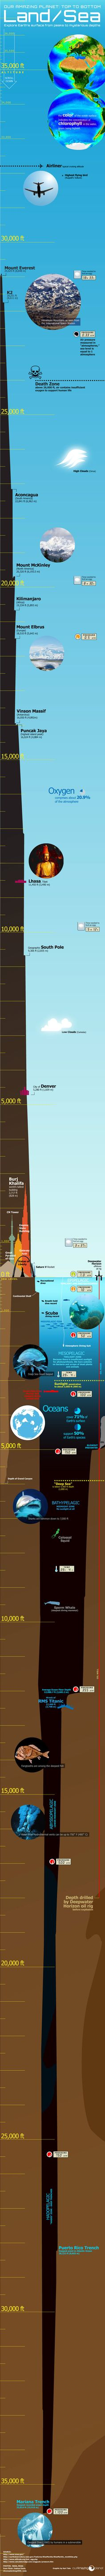 Images Of Earth: (Top-To-Bottom.jpg)  //Edge of Space To The Deepest Part Of Our Oceans!-MFB